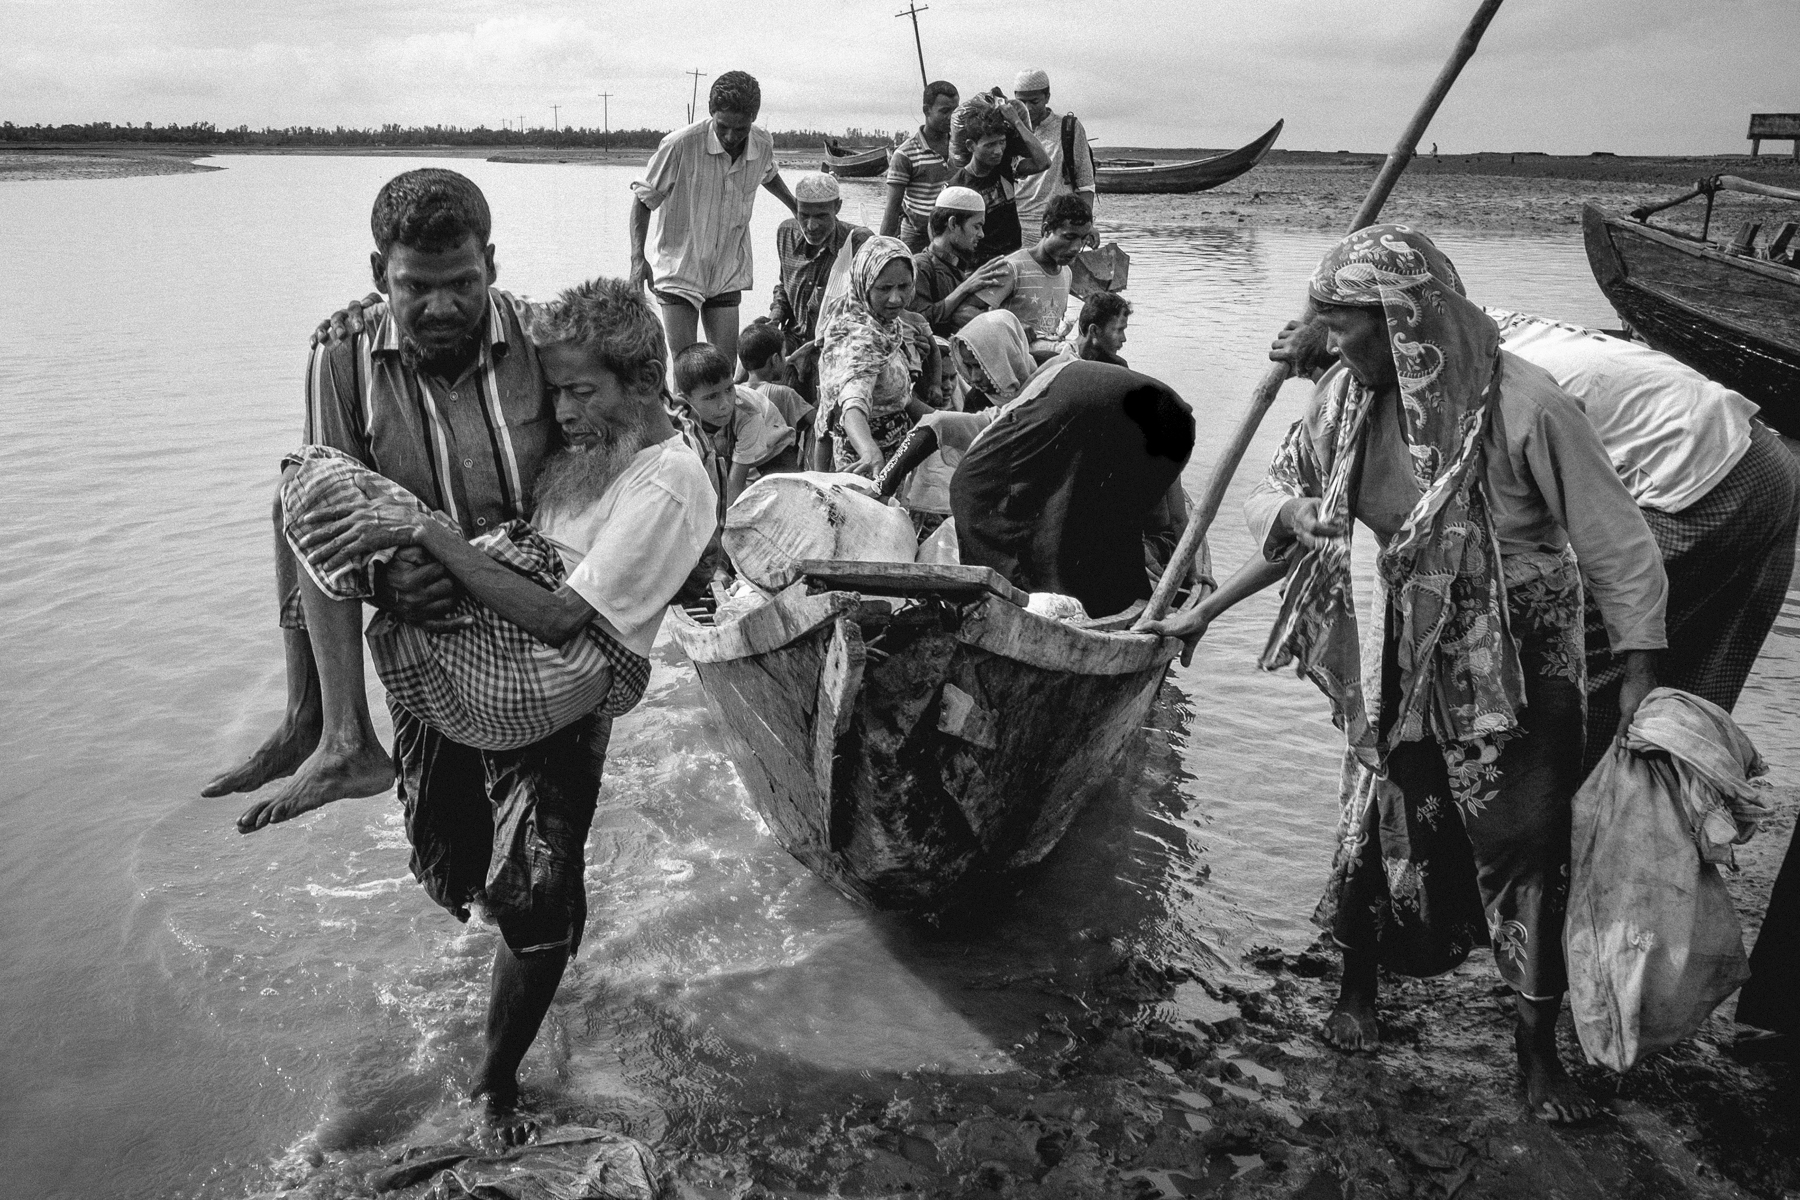 A Bangladeshi boat driver carries a sickened 80 year old Halu to shore after ferrying a boat of Rohingya refugees from Atilla Para and Indin Para, Maungdaw to Bangladesh's mainland at Shah Parir Dwip.